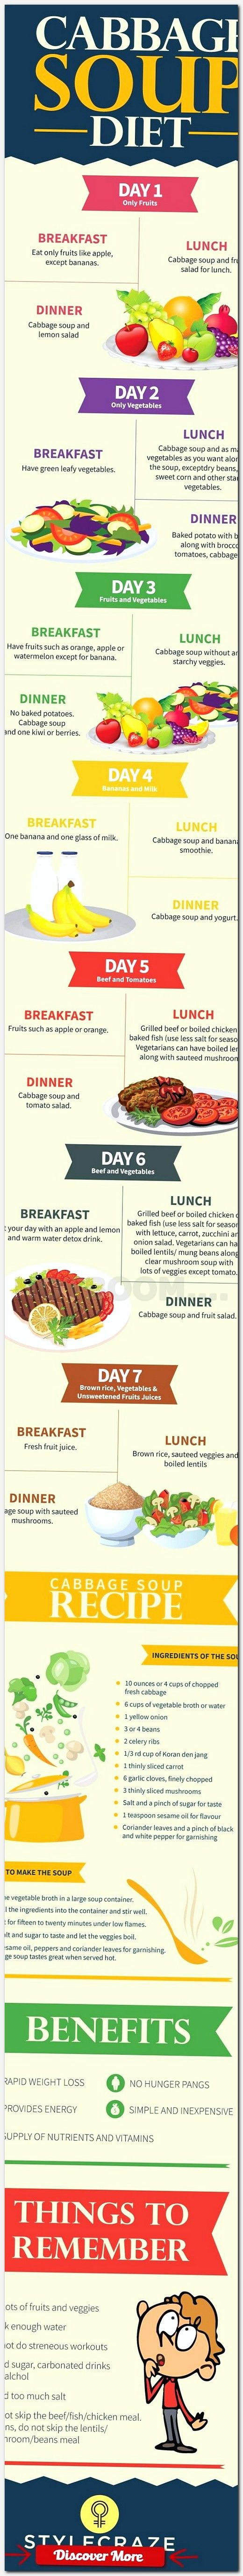 Budget diet plan to lose weight